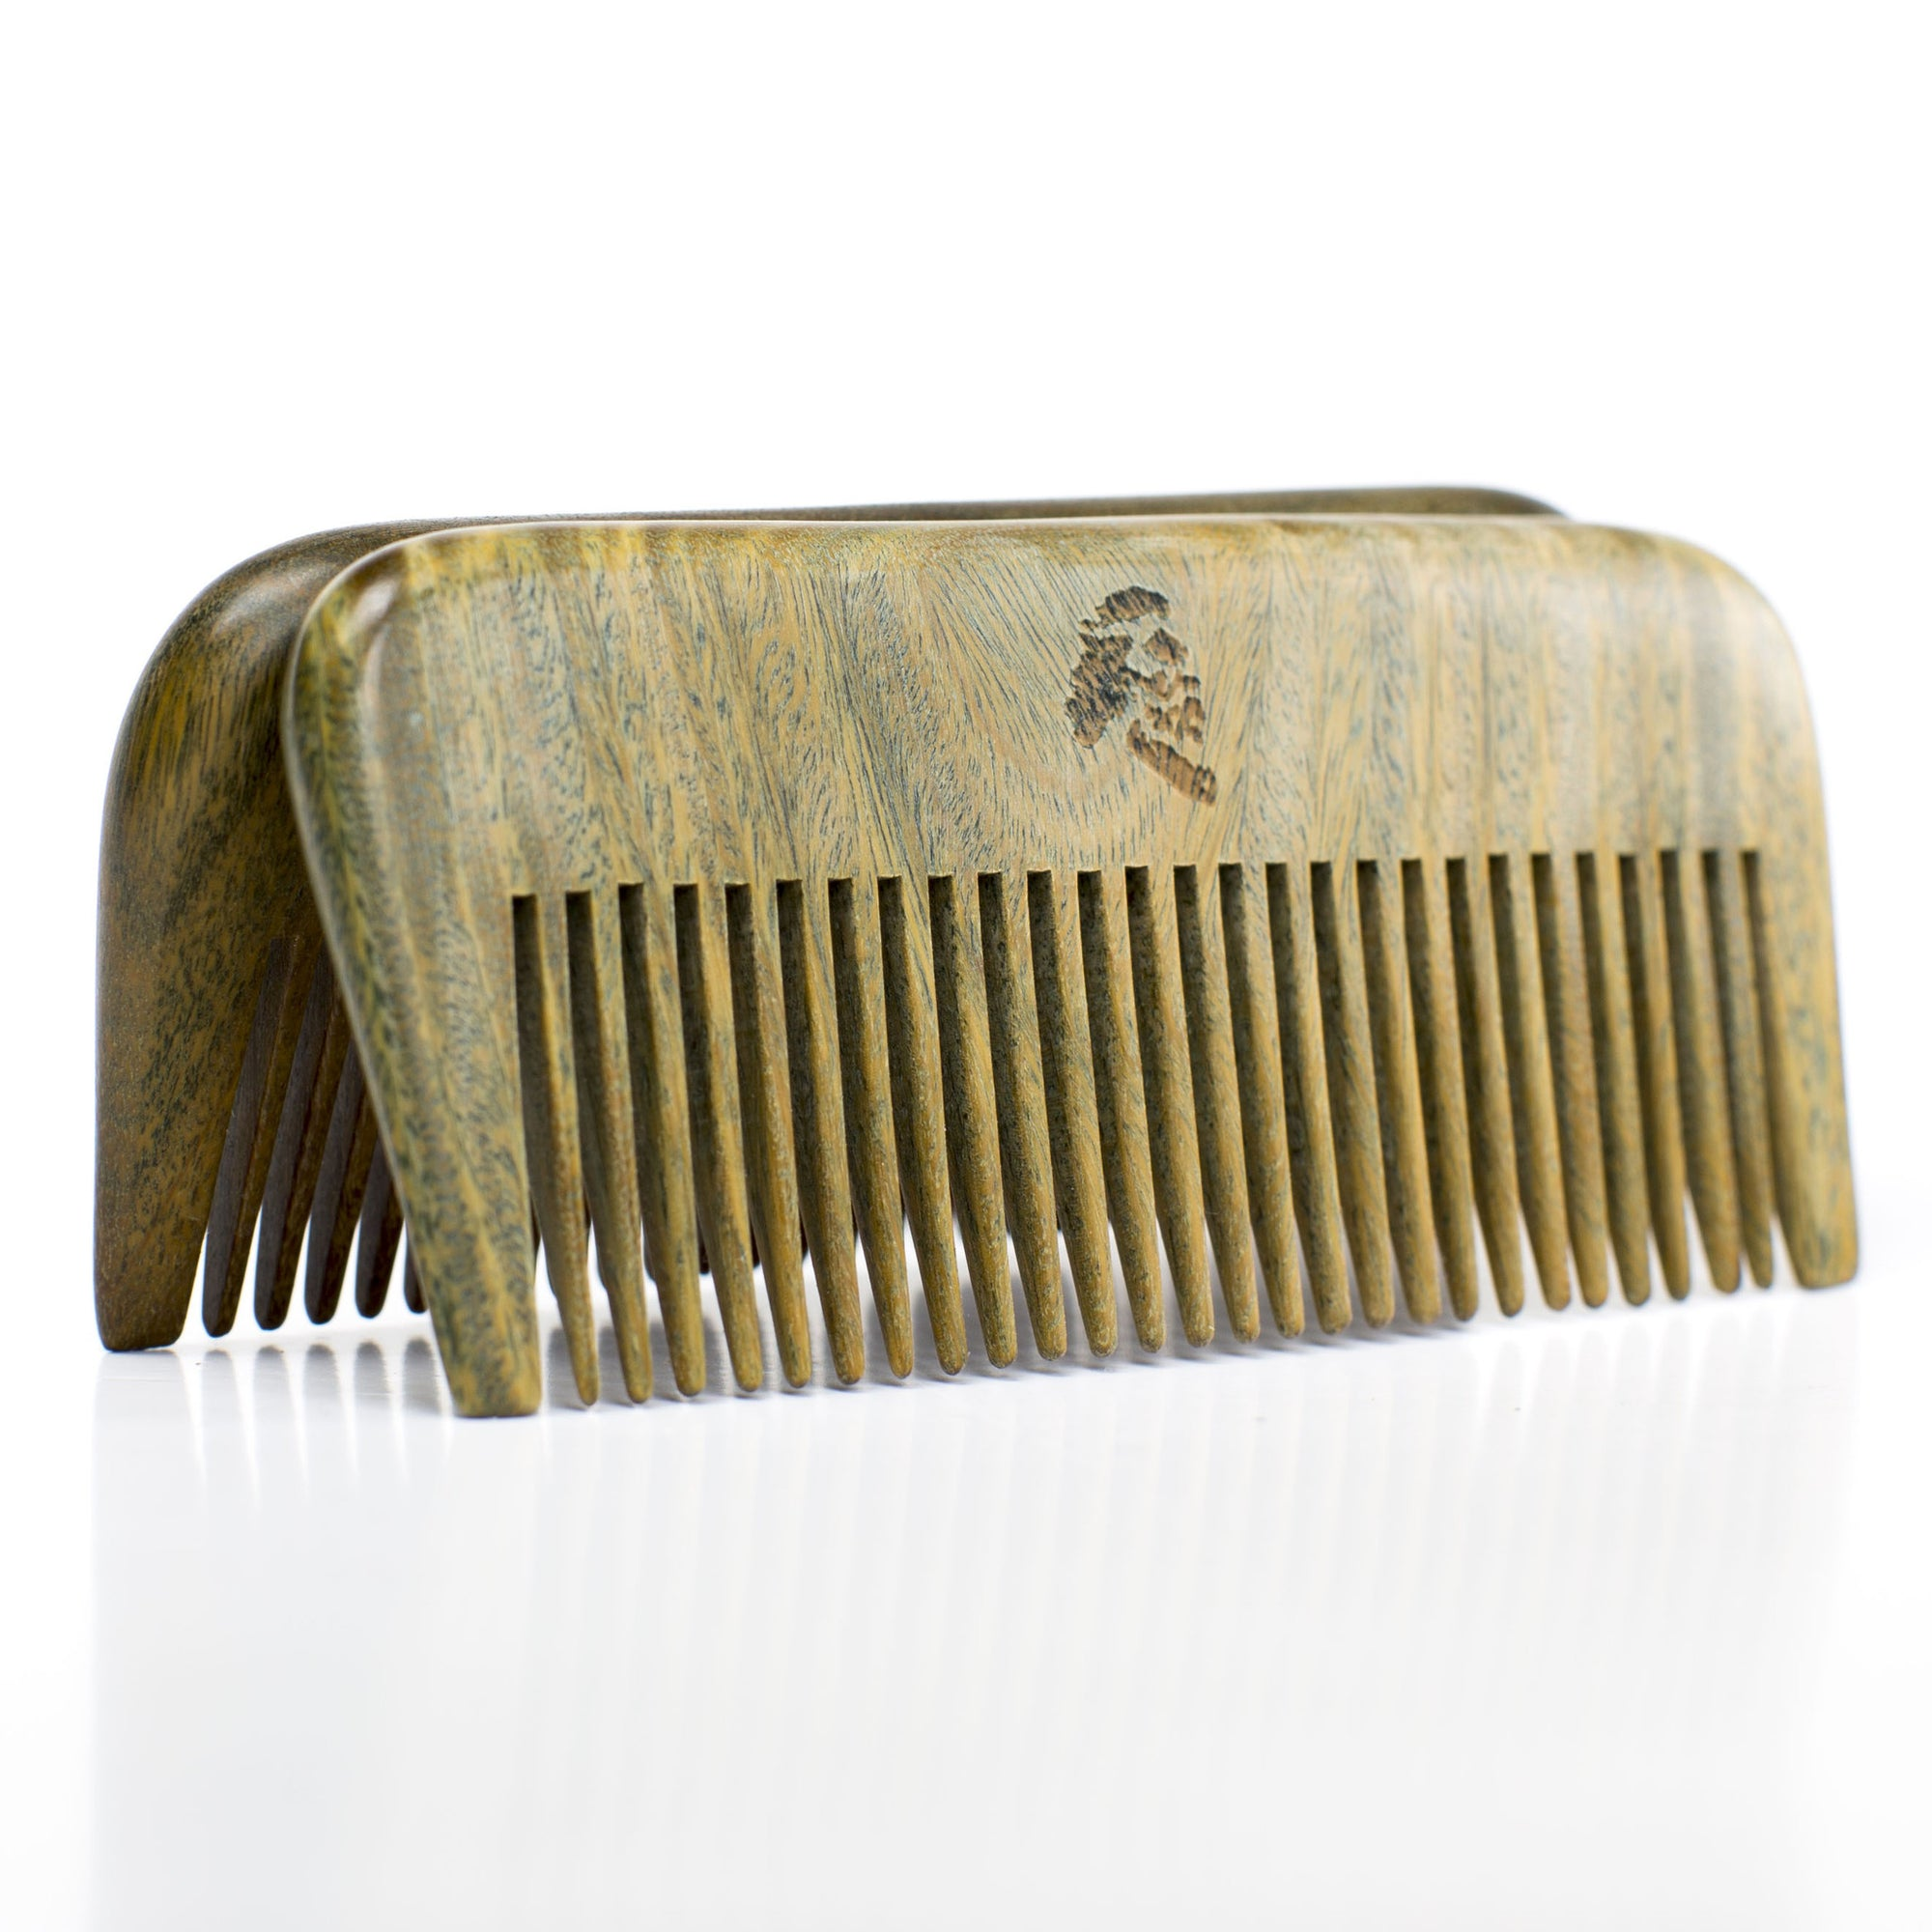 Crafting A Better You® Comb